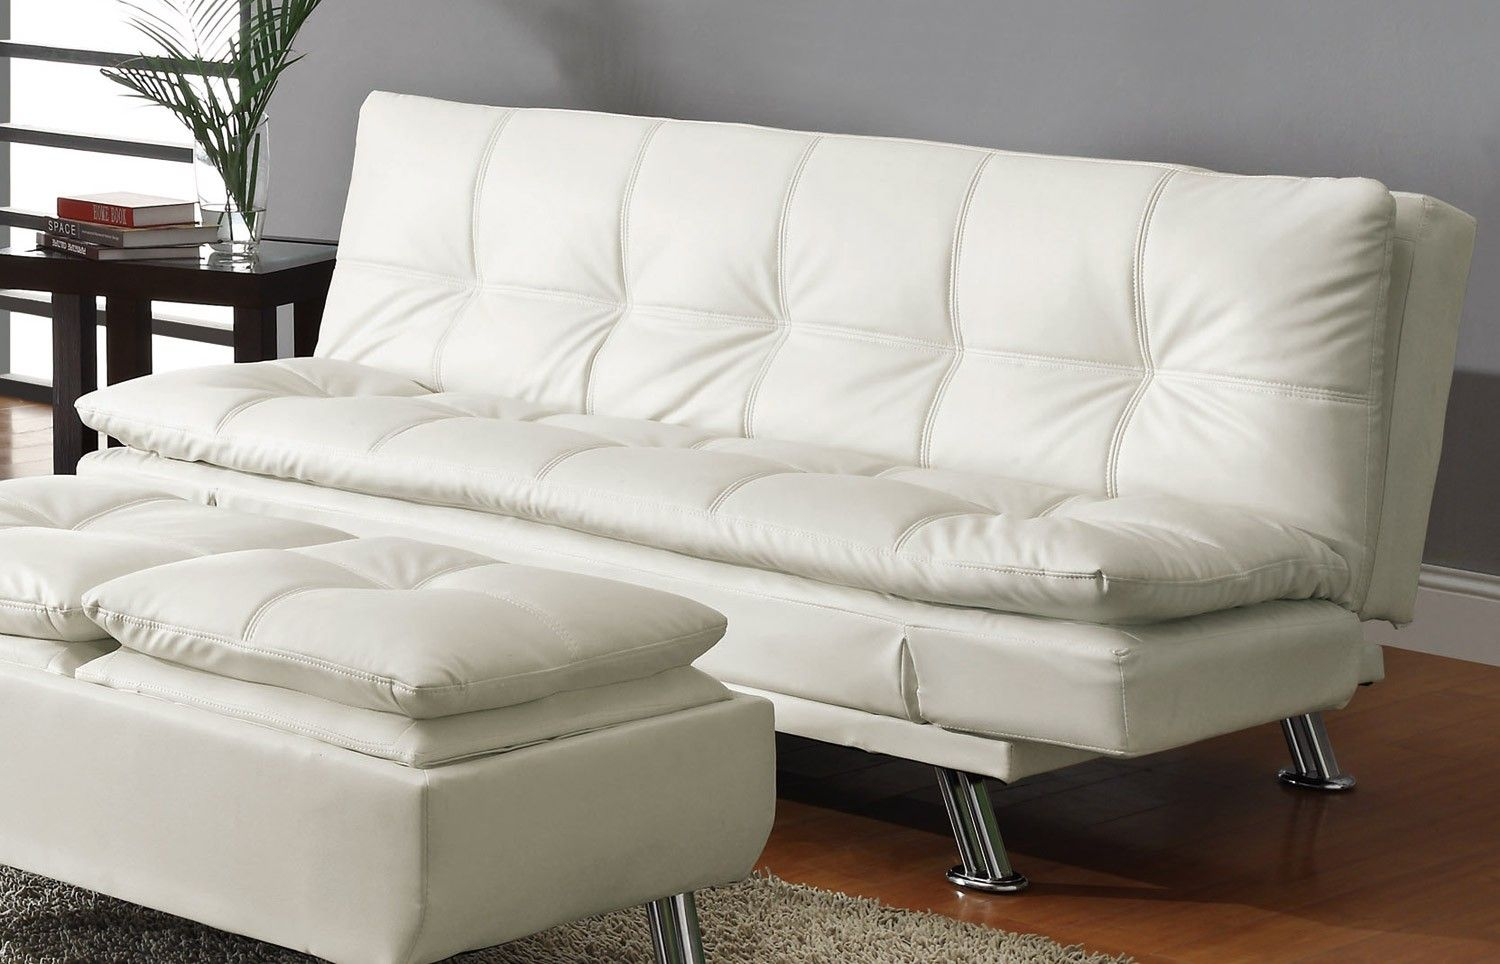 2018 Cool And Creative Sofa Bed Designs With Elegance Style And Functionality Comfortable Sofa Bed Leather Sofa Bed White Leather Sofa Bed